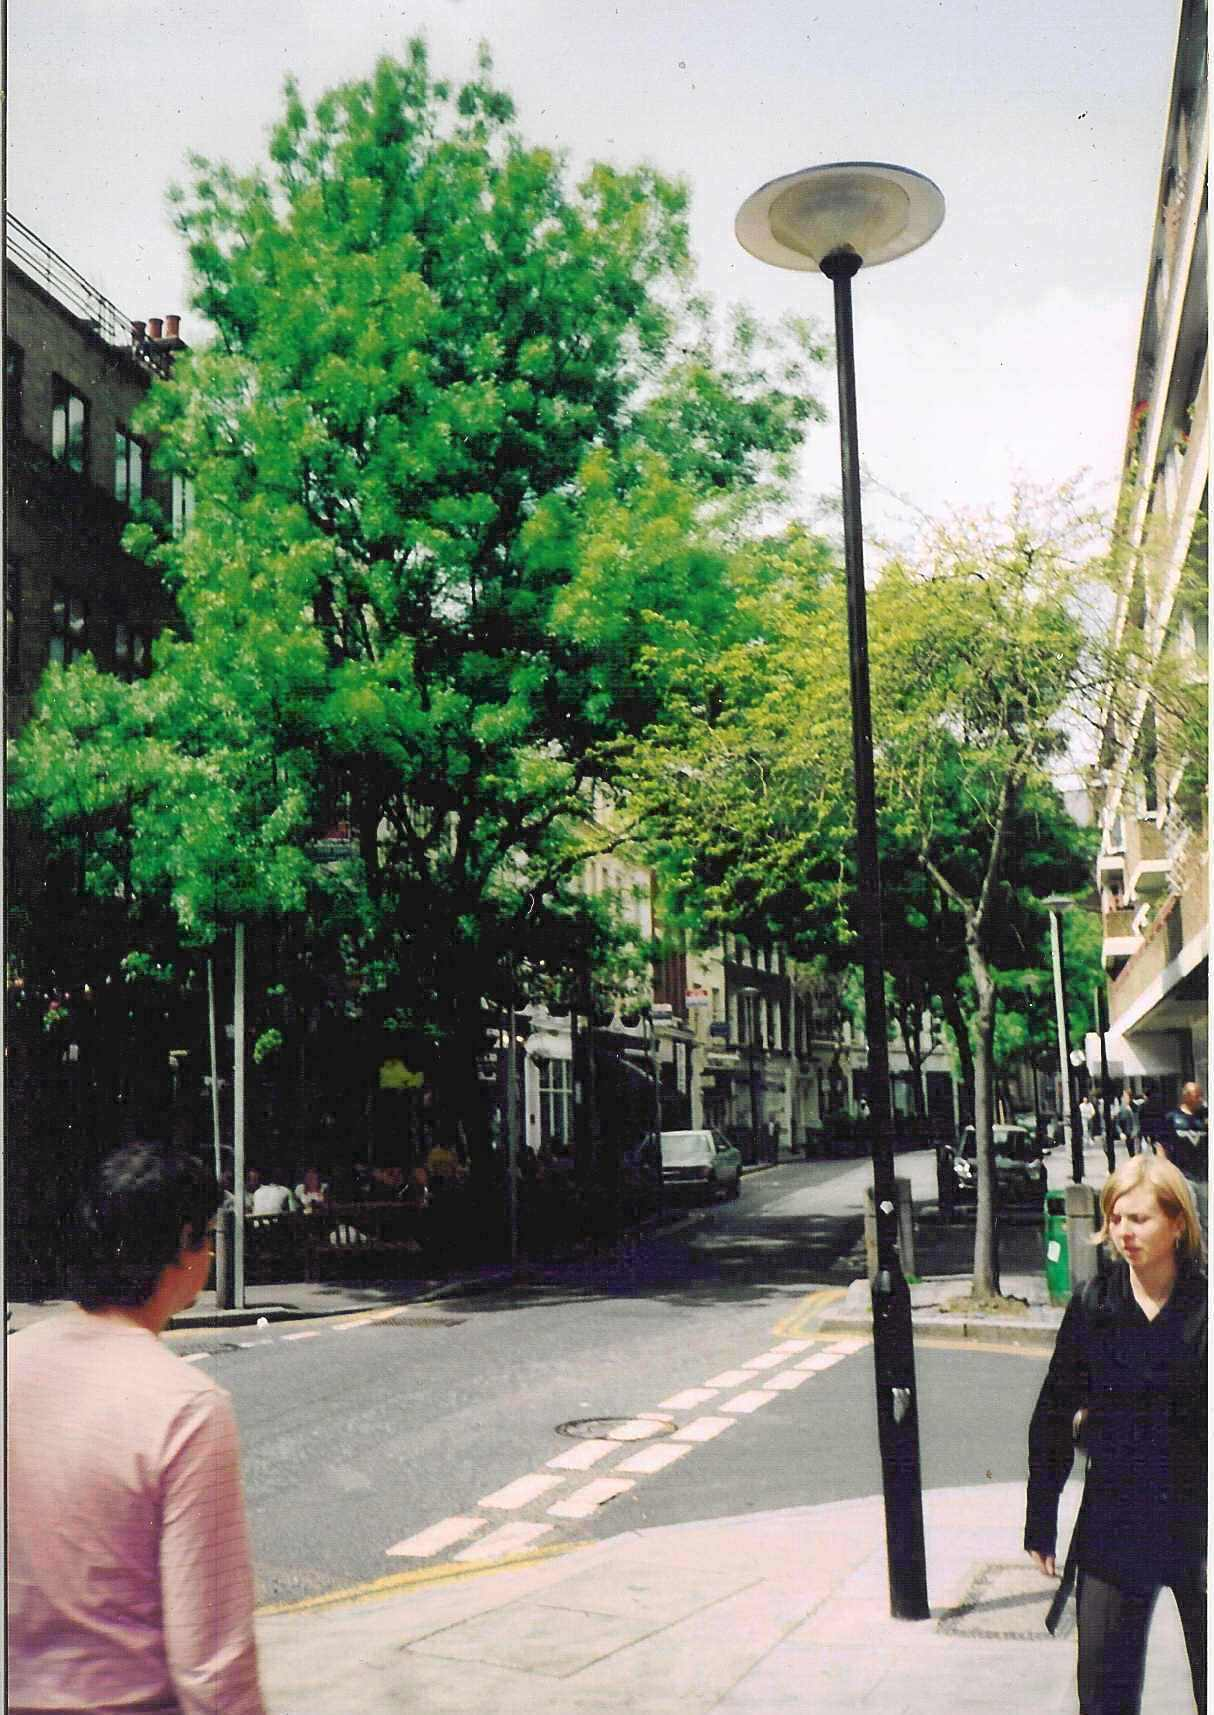 Endell Street trees planted in 1984. Part of the work of the Housing Action Area Committee, forerunner of the Trust.